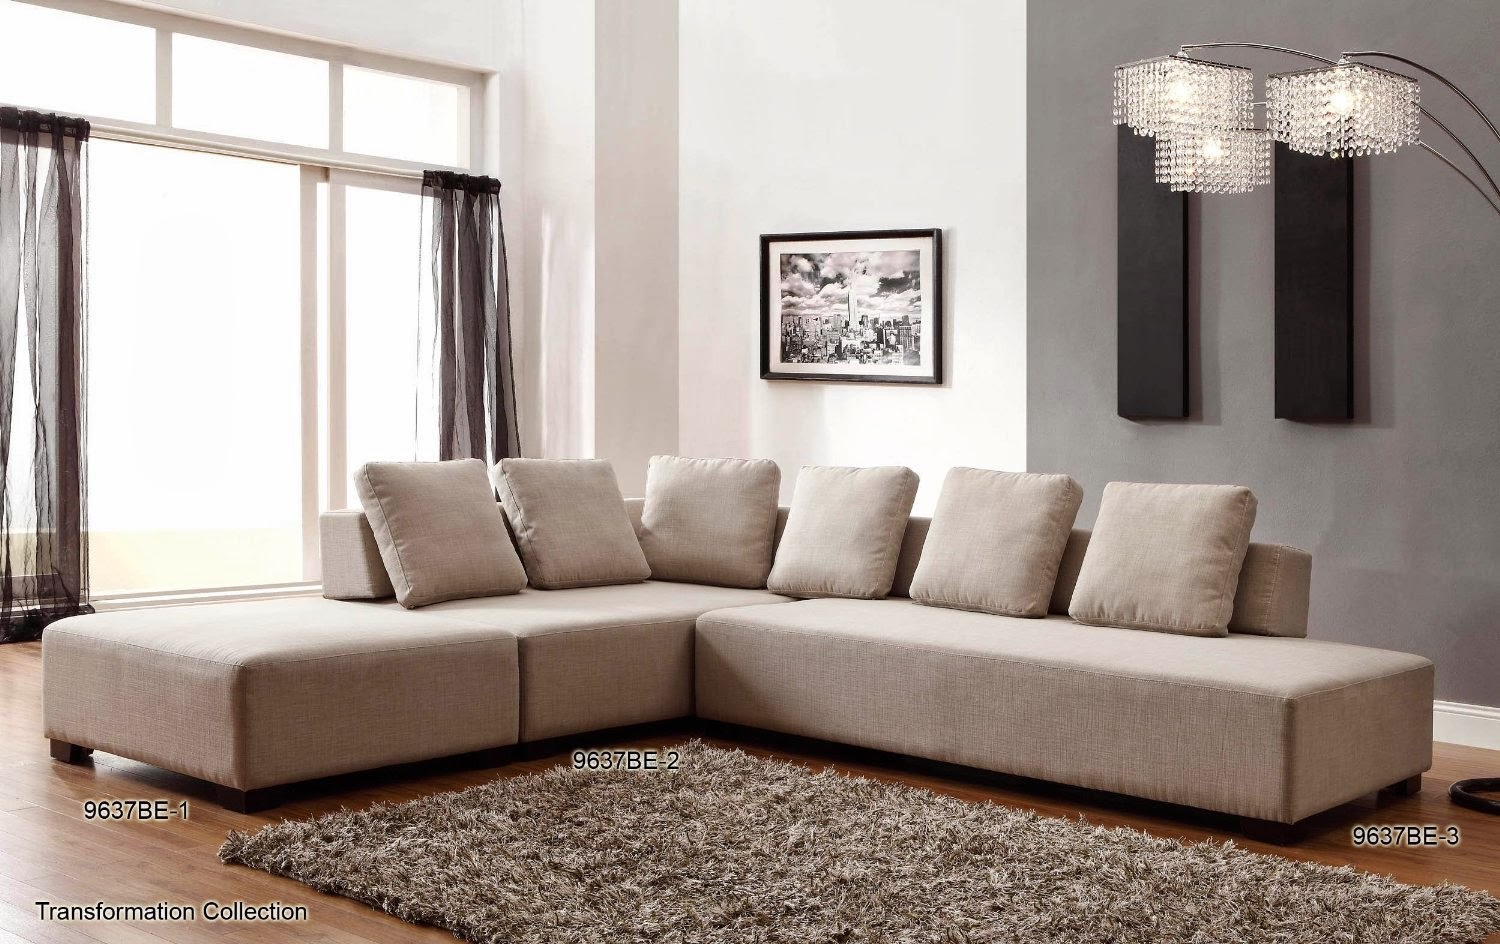 Homelegance Transformation Sofa Beige Linen Homelegance